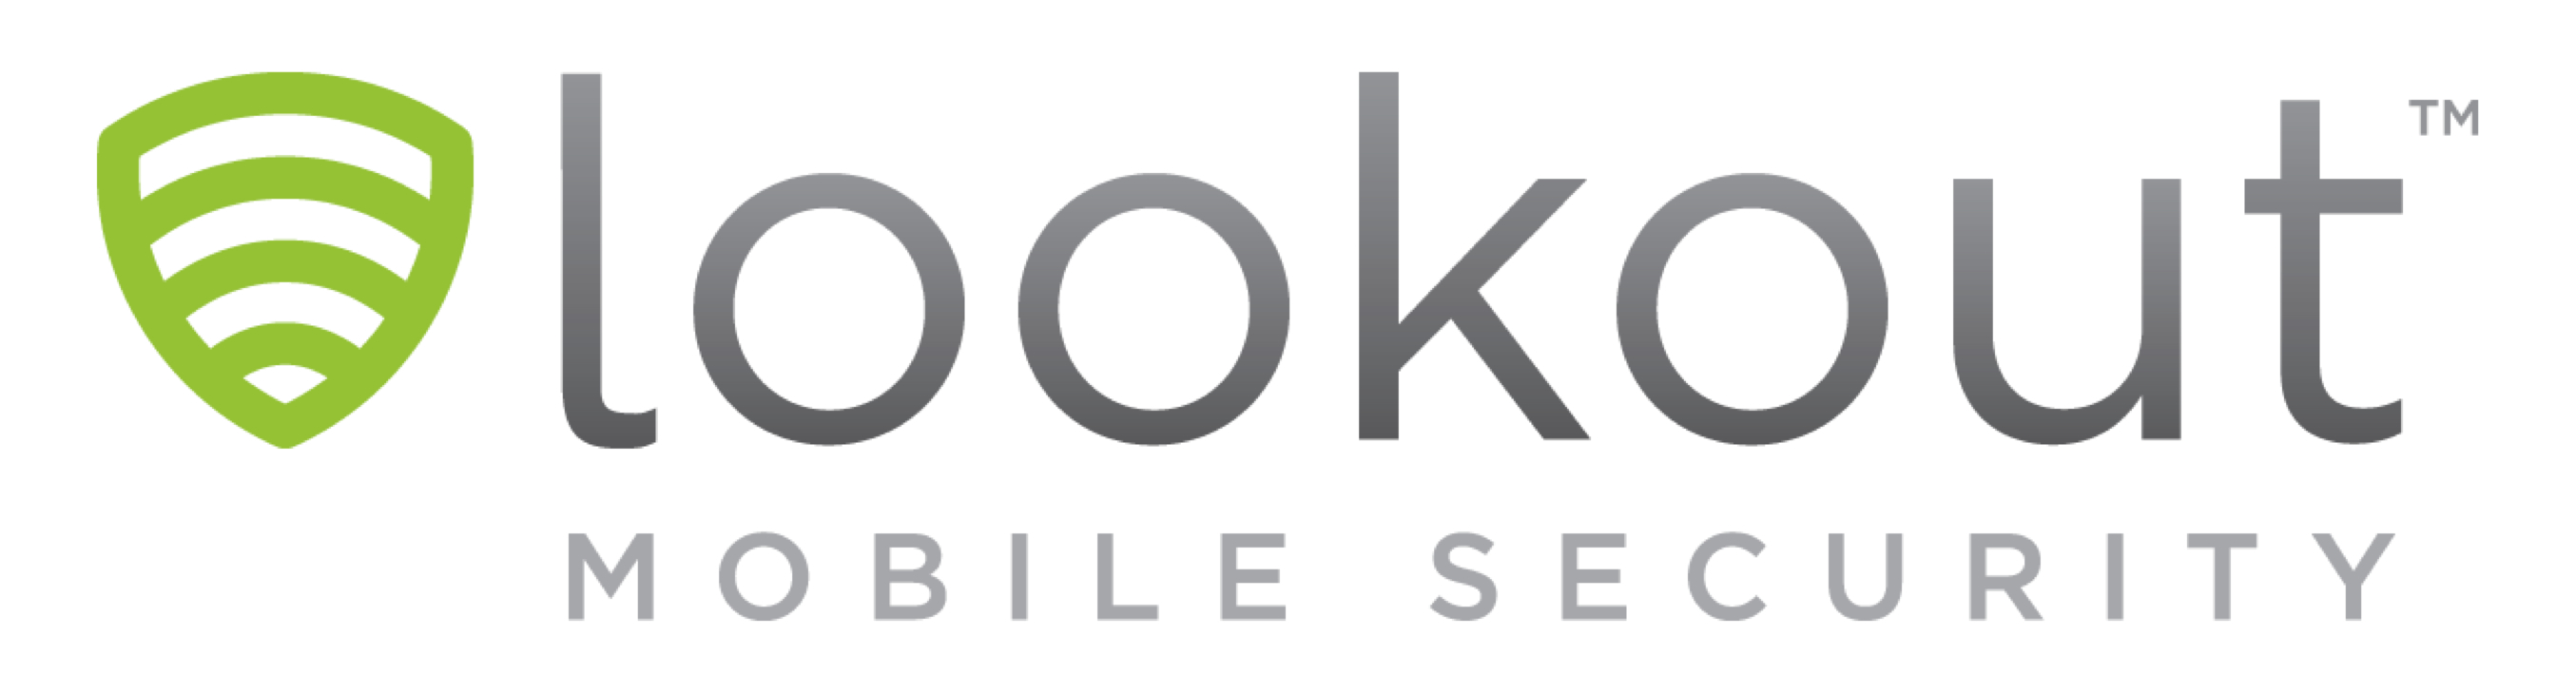 lookout-logo-web